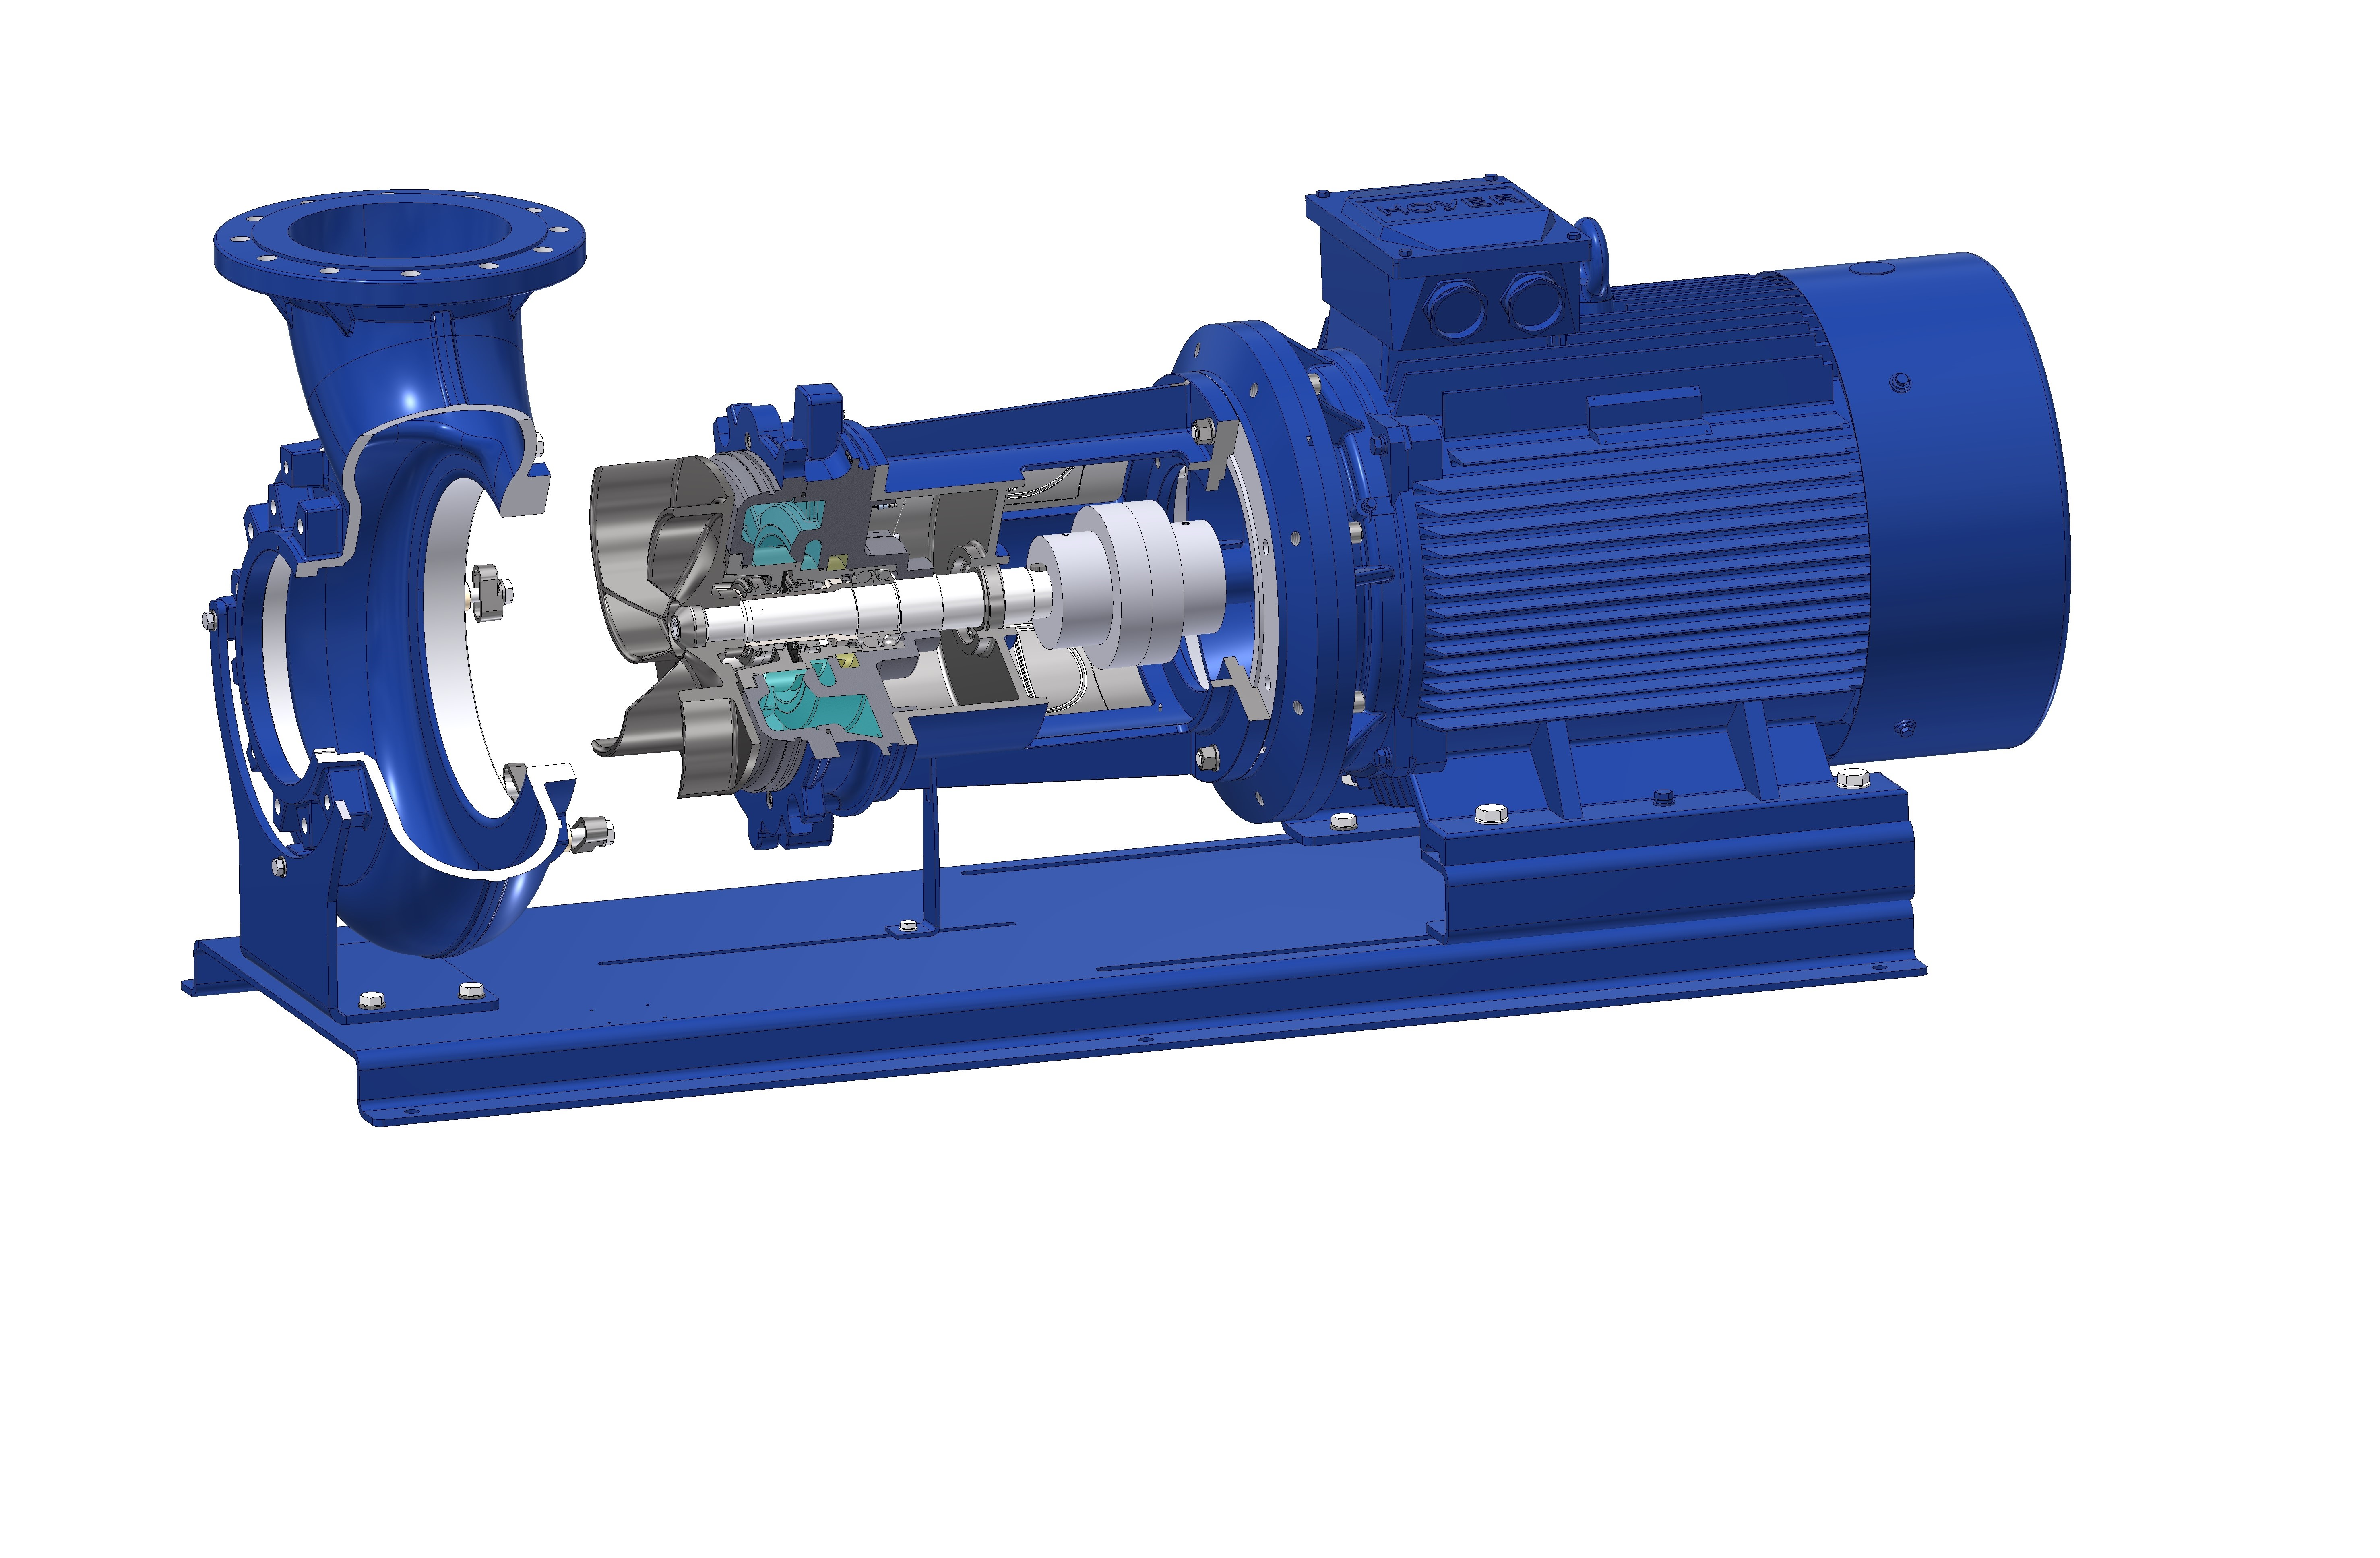 S-WN wastewater pump